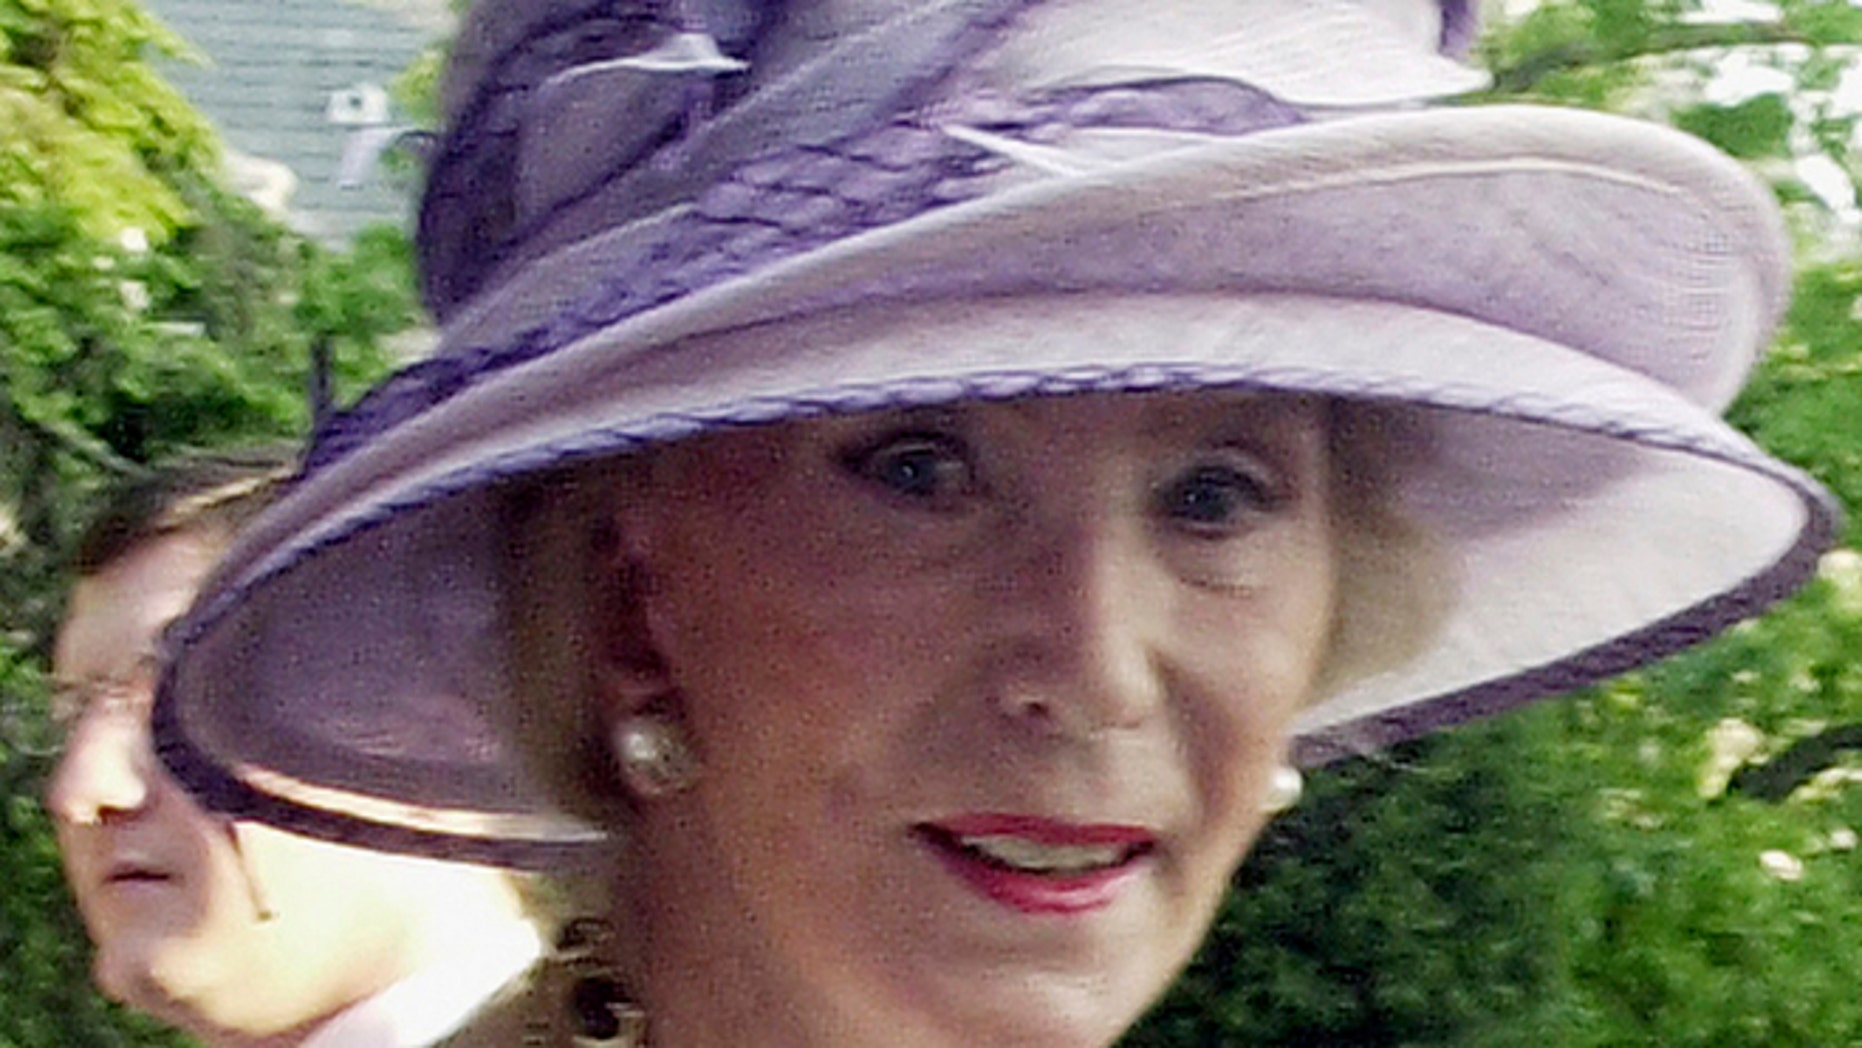 This May 12, 2004 file photo shows German socialite Viola Drath during the annual Woodrow Wilson home garden party and hat contest in Washington.